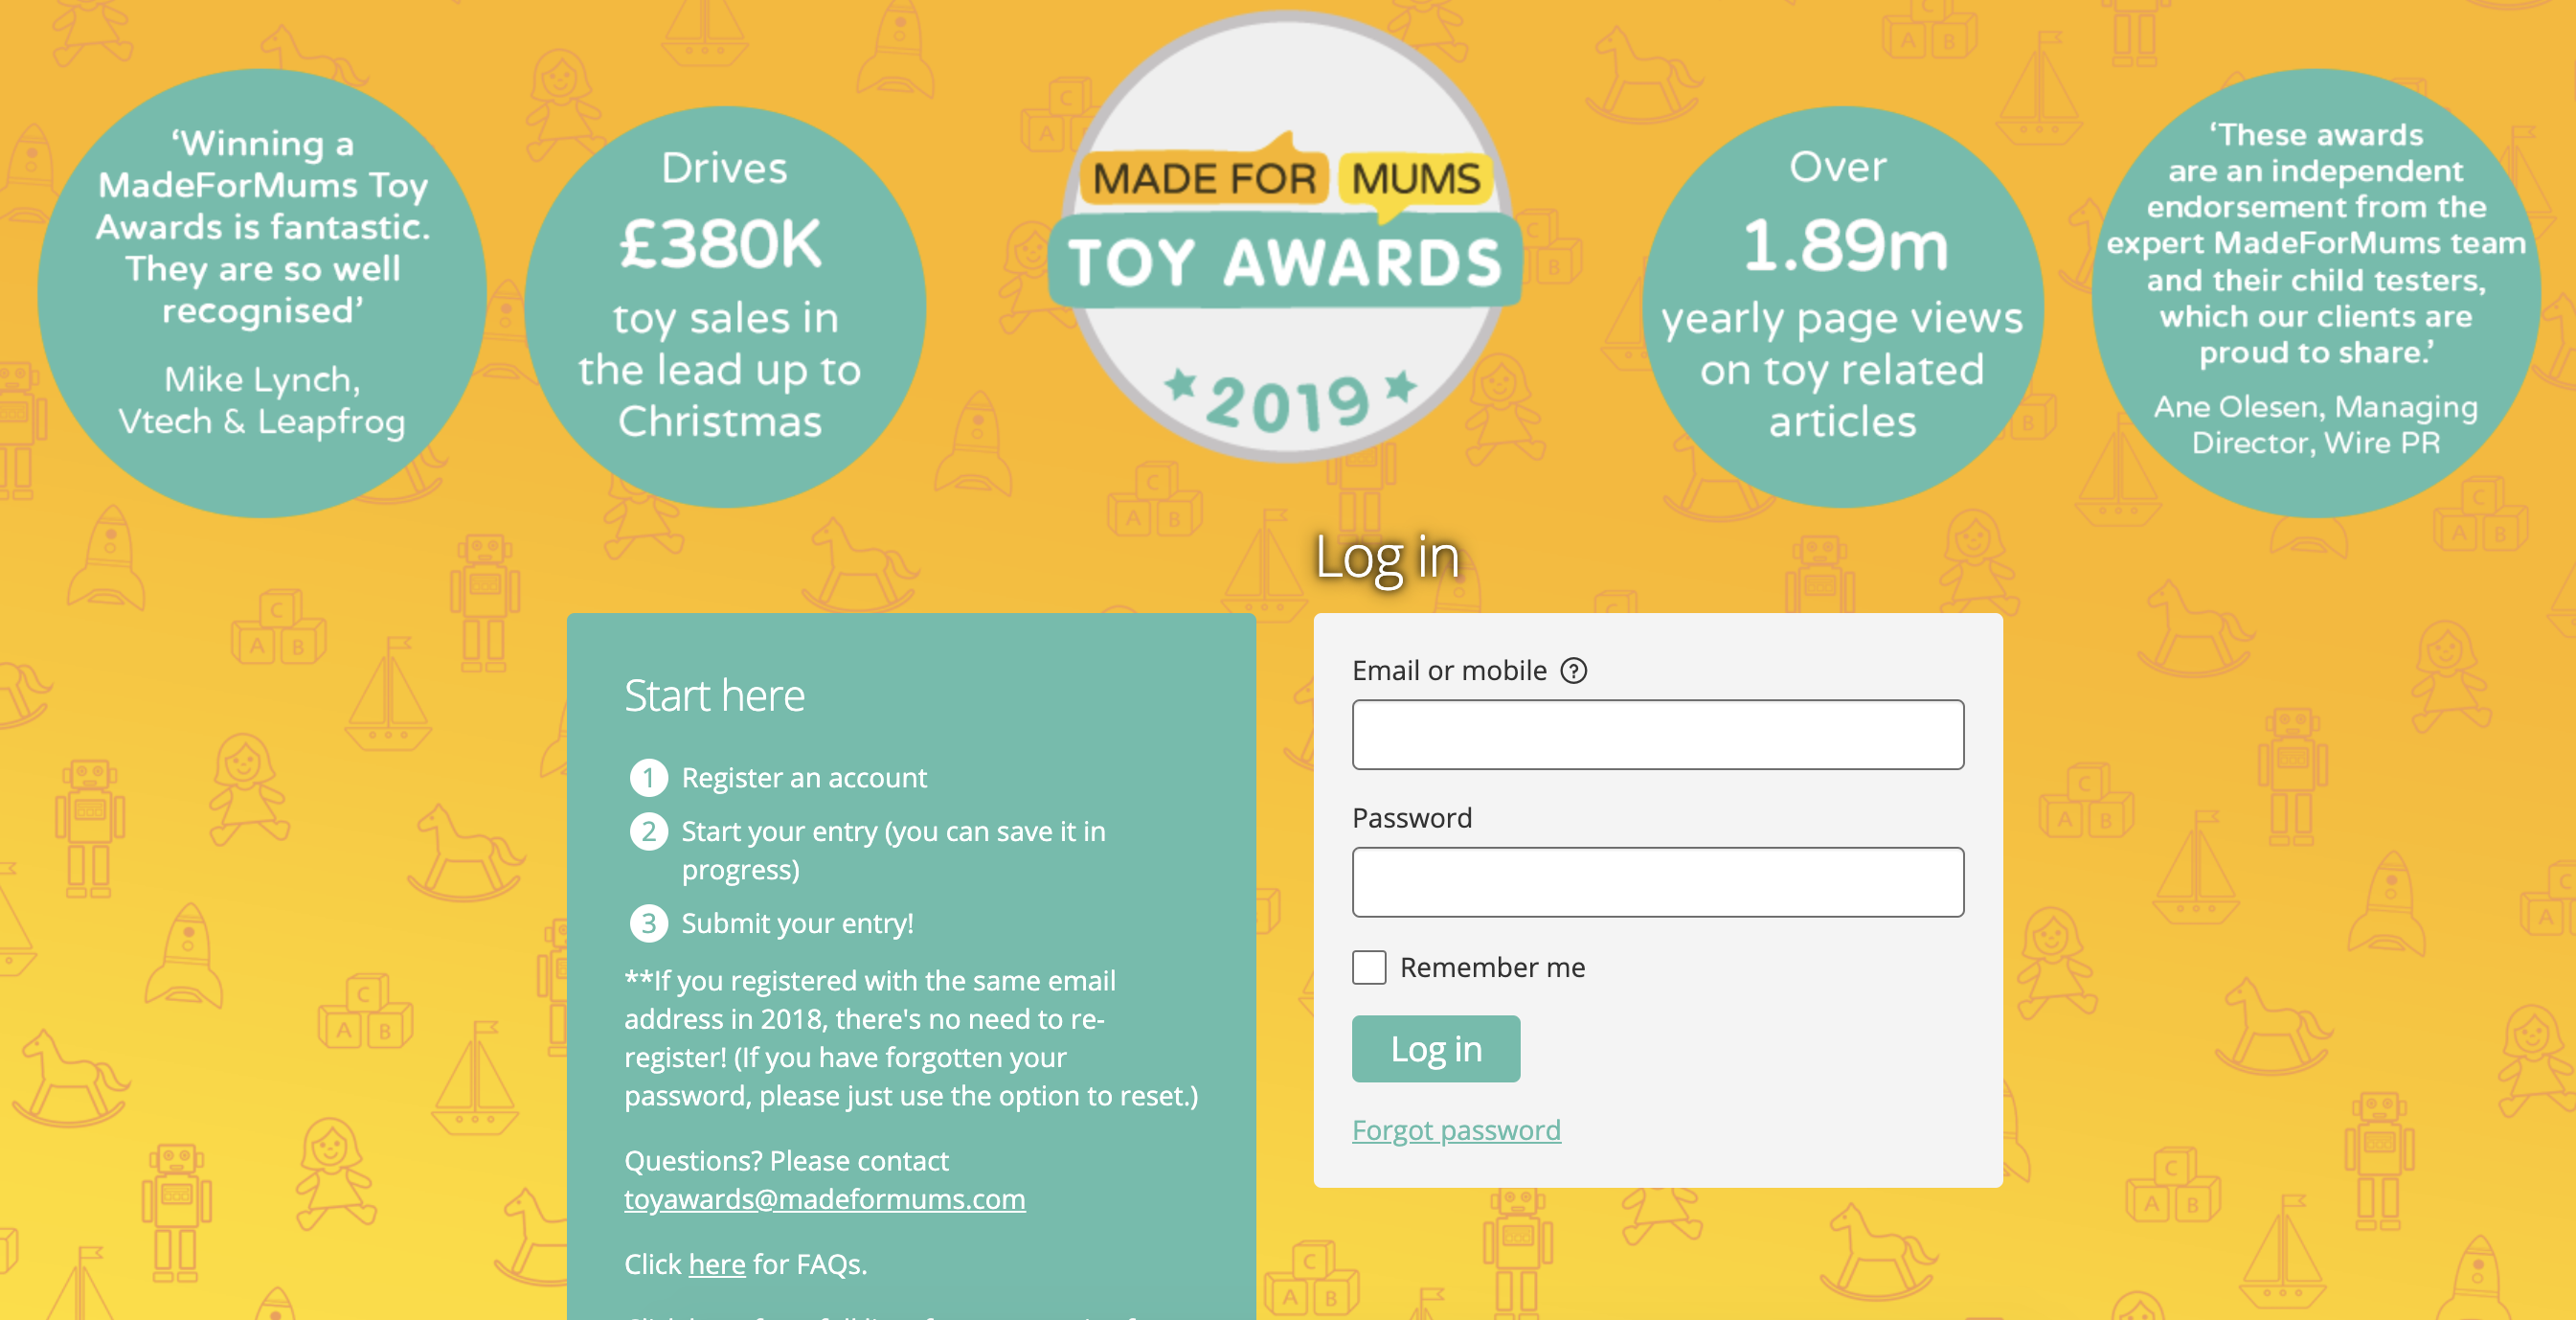 Made for mums toy awards 2019 registration page